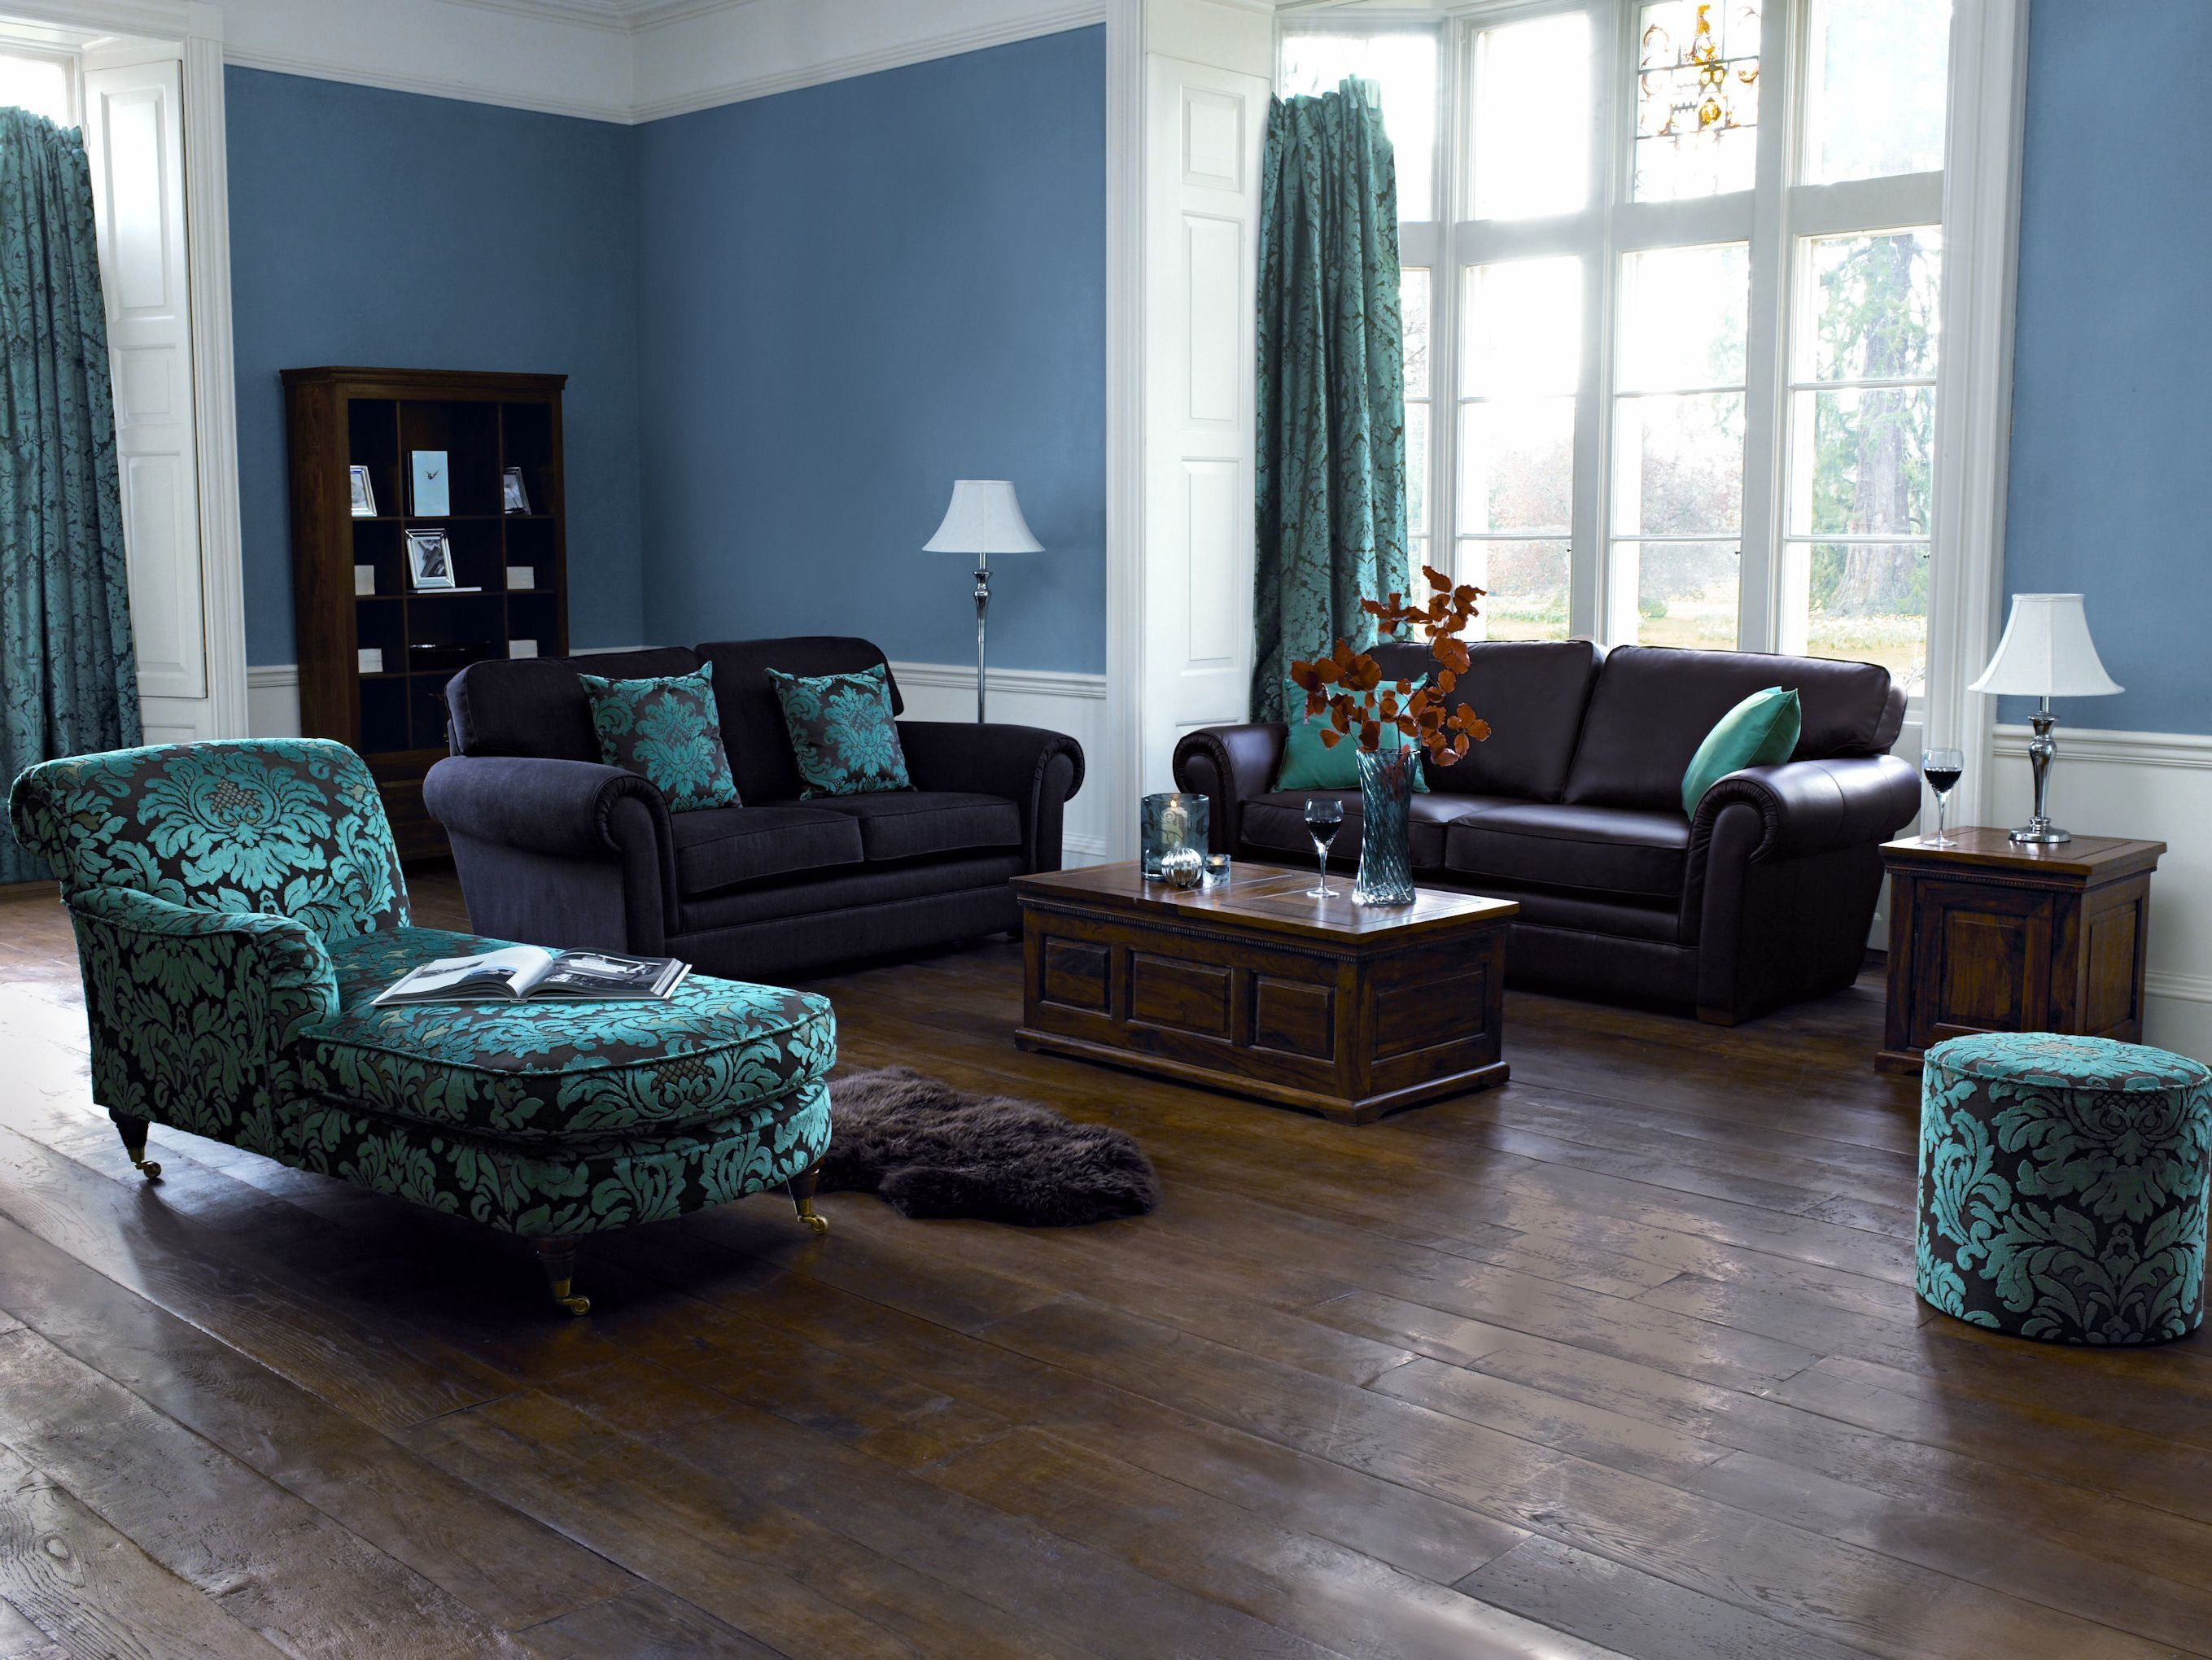 Fascinating Graceful Blue Velvet Accent Chaise Lounge In Inspiring Living Room Chaise Lounge : blue velvet chaise lounge - Sectionals, Sofas & Couches